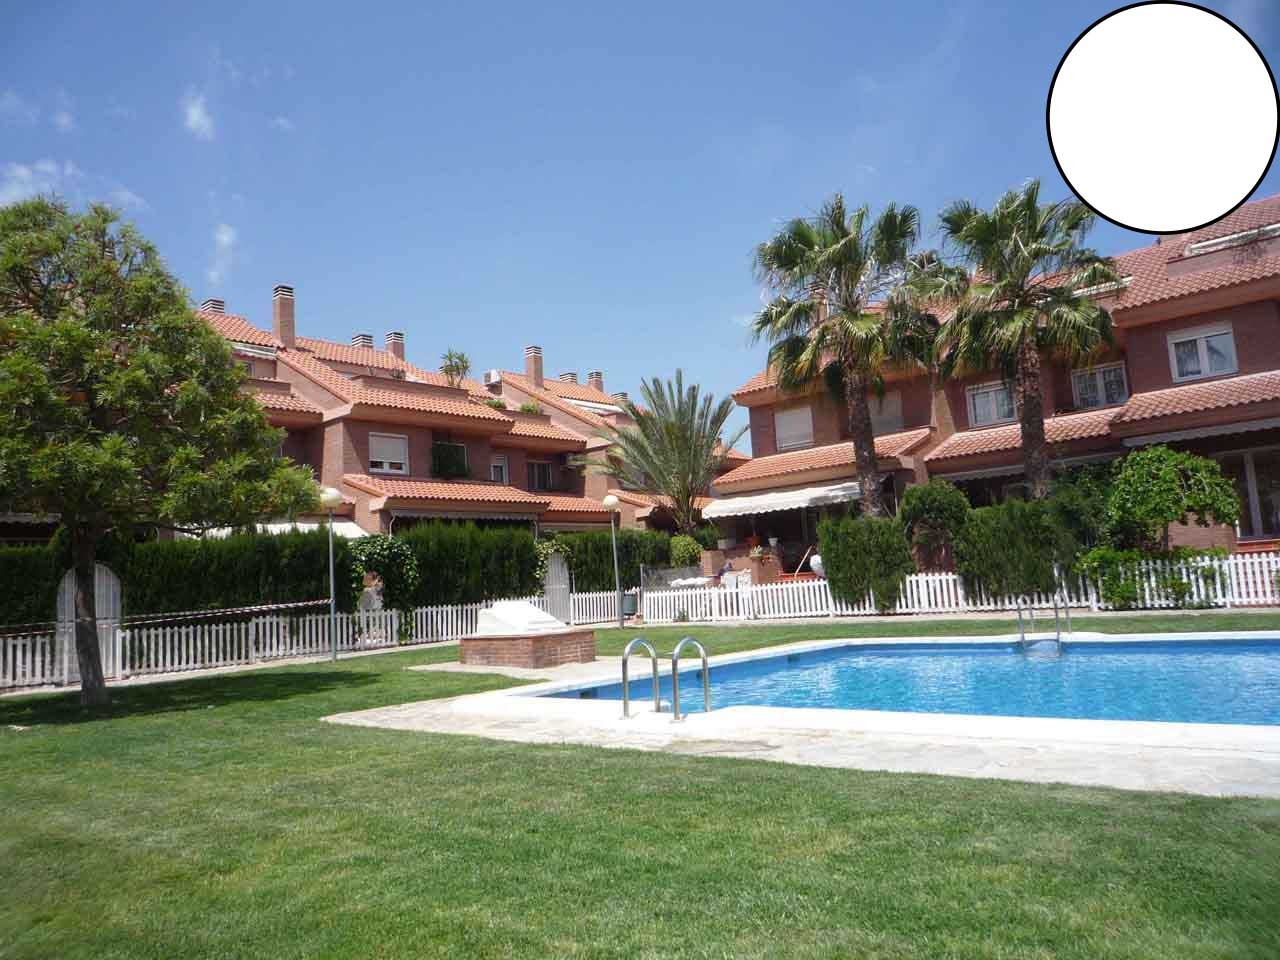 The amazing Mzk-House with pool, BBQ and very good connection by